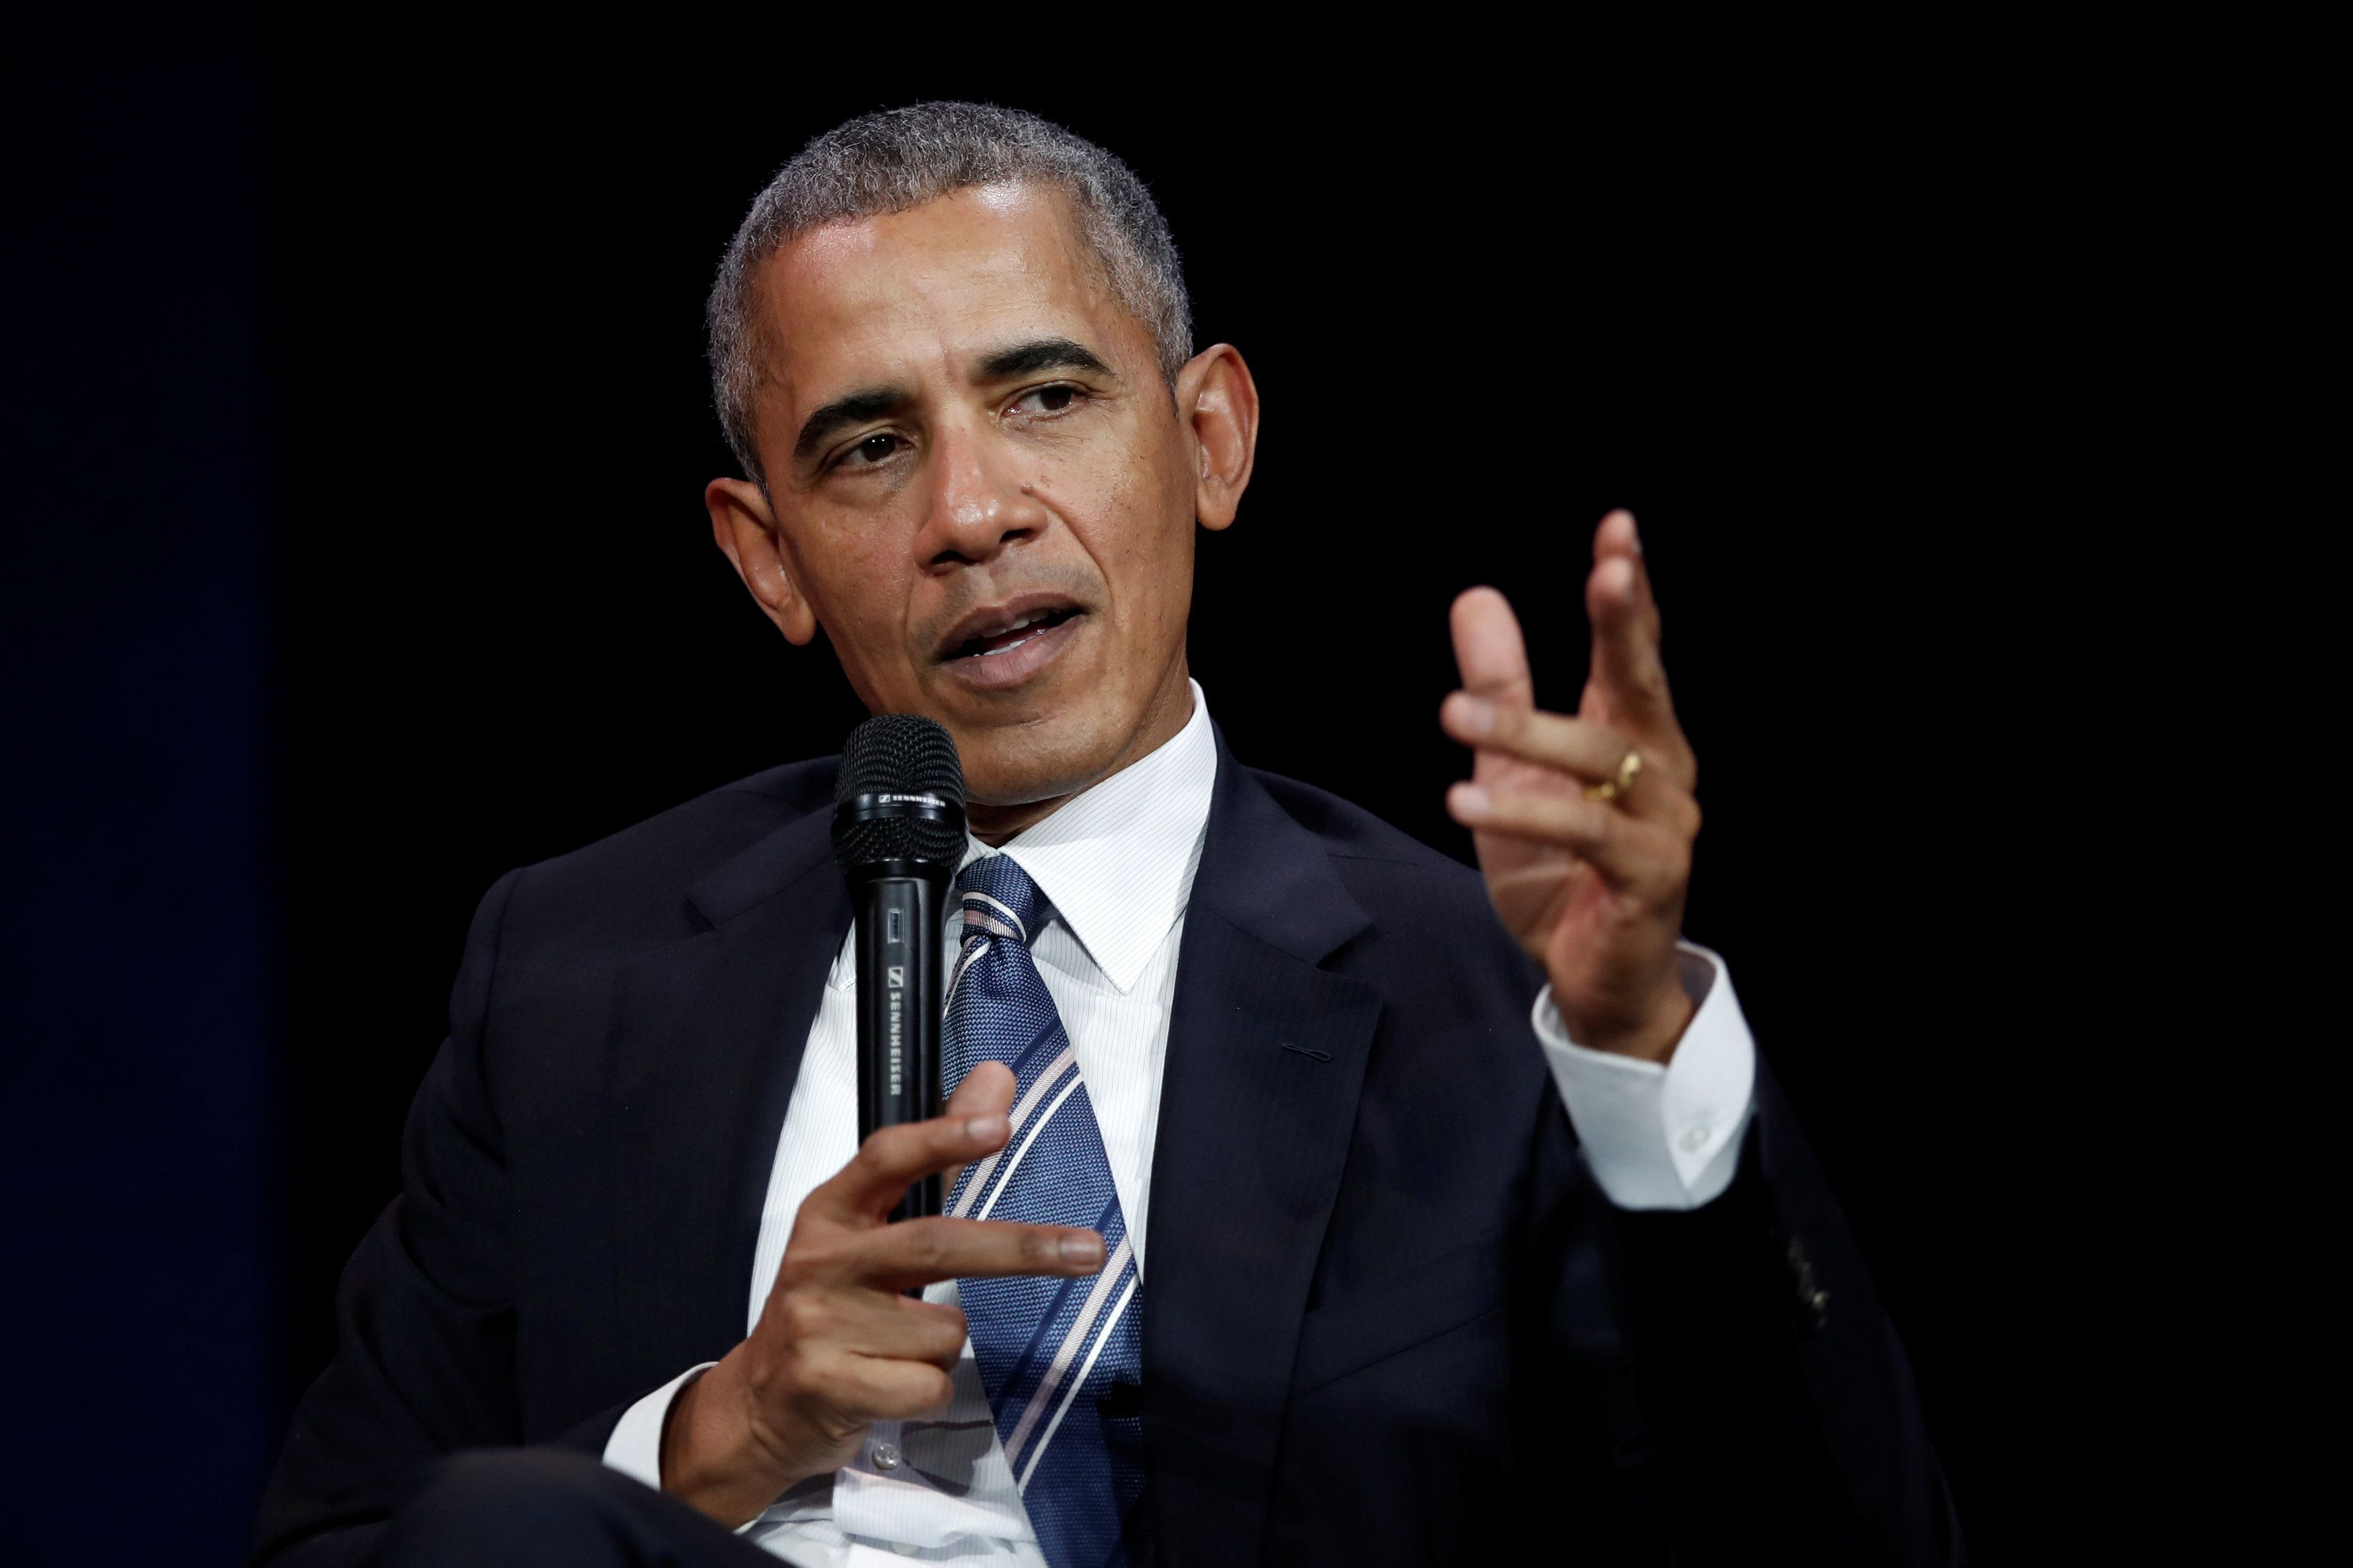 Obama: Elect More Women 'Because Men Seem To Be Having Some Problems These